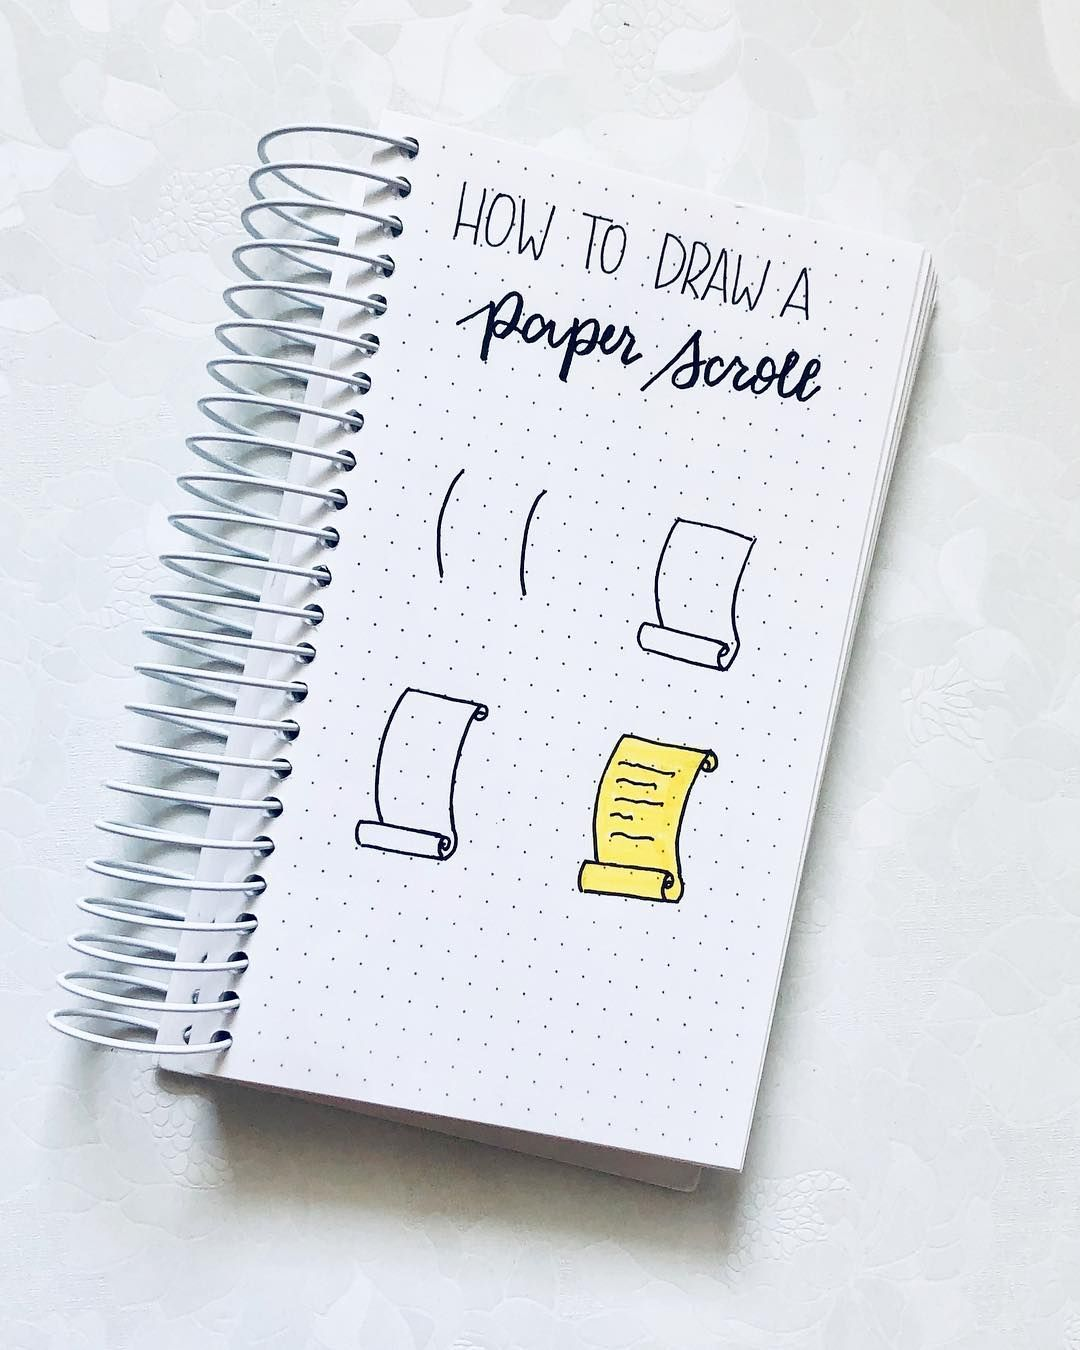 Junefolio On Instagram How To Draw A Paper Scroll Pen Brustro Technical P Bullet Journal Writing Bullet Journal Ideas Pages Bullet Journal Doodles